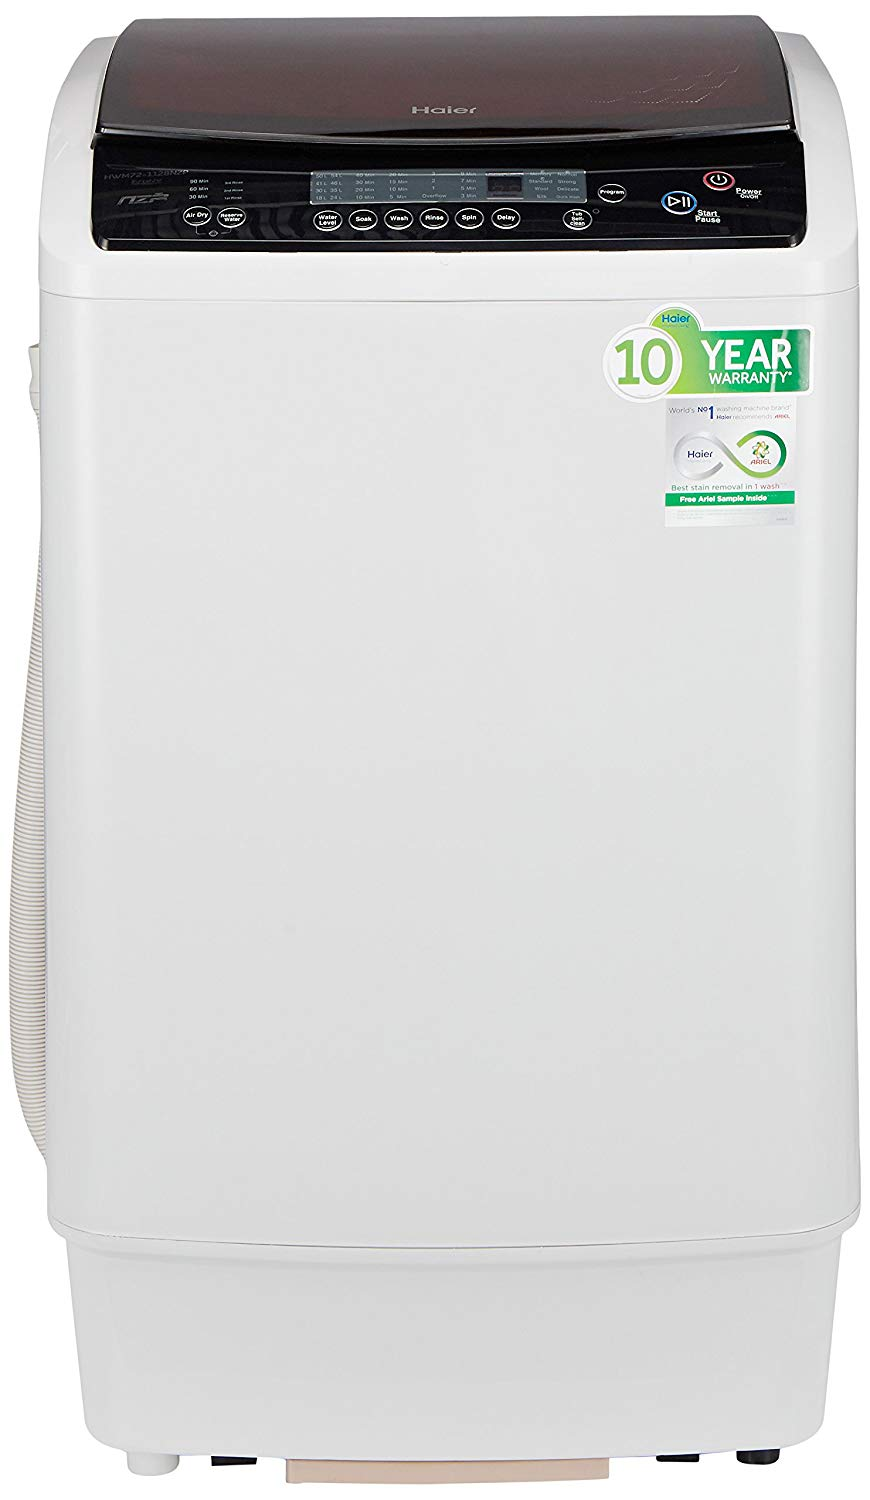 Haier 7.2 kg Fully-Automatic Top Loading Washing Machine Photo1